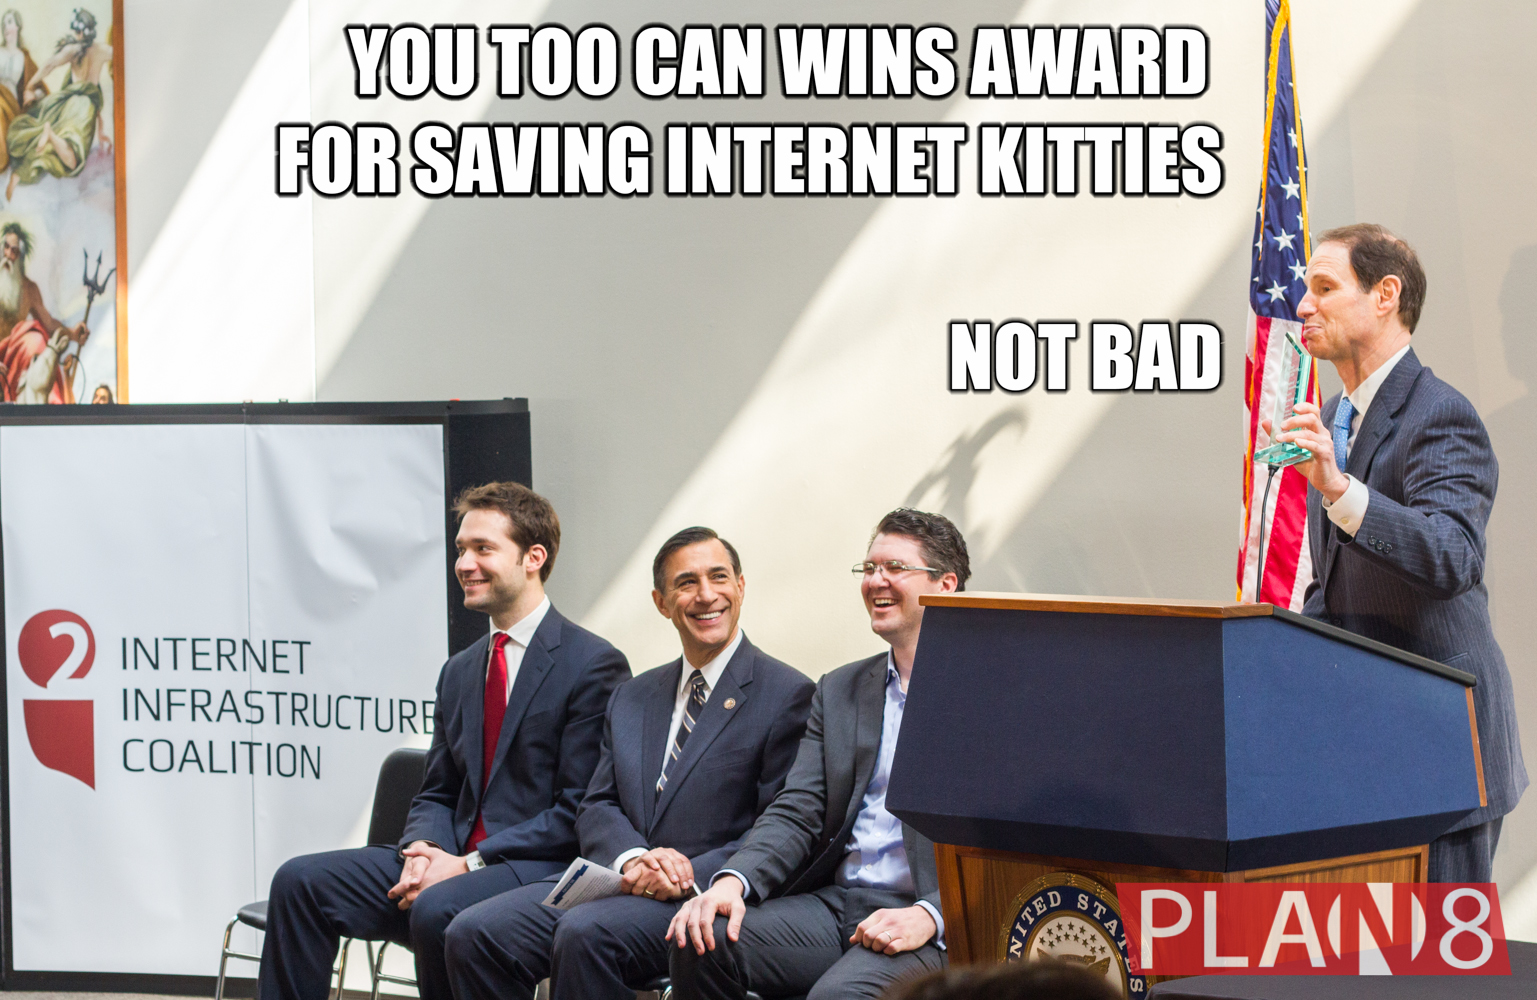 """""""You Too Can Wins Awarf for Saving Internet Kitties, Not Bad"""" With Alexis Ohanian, Rep Darrell Issa, Christian Dawson, and Senator Ron Wyden"""